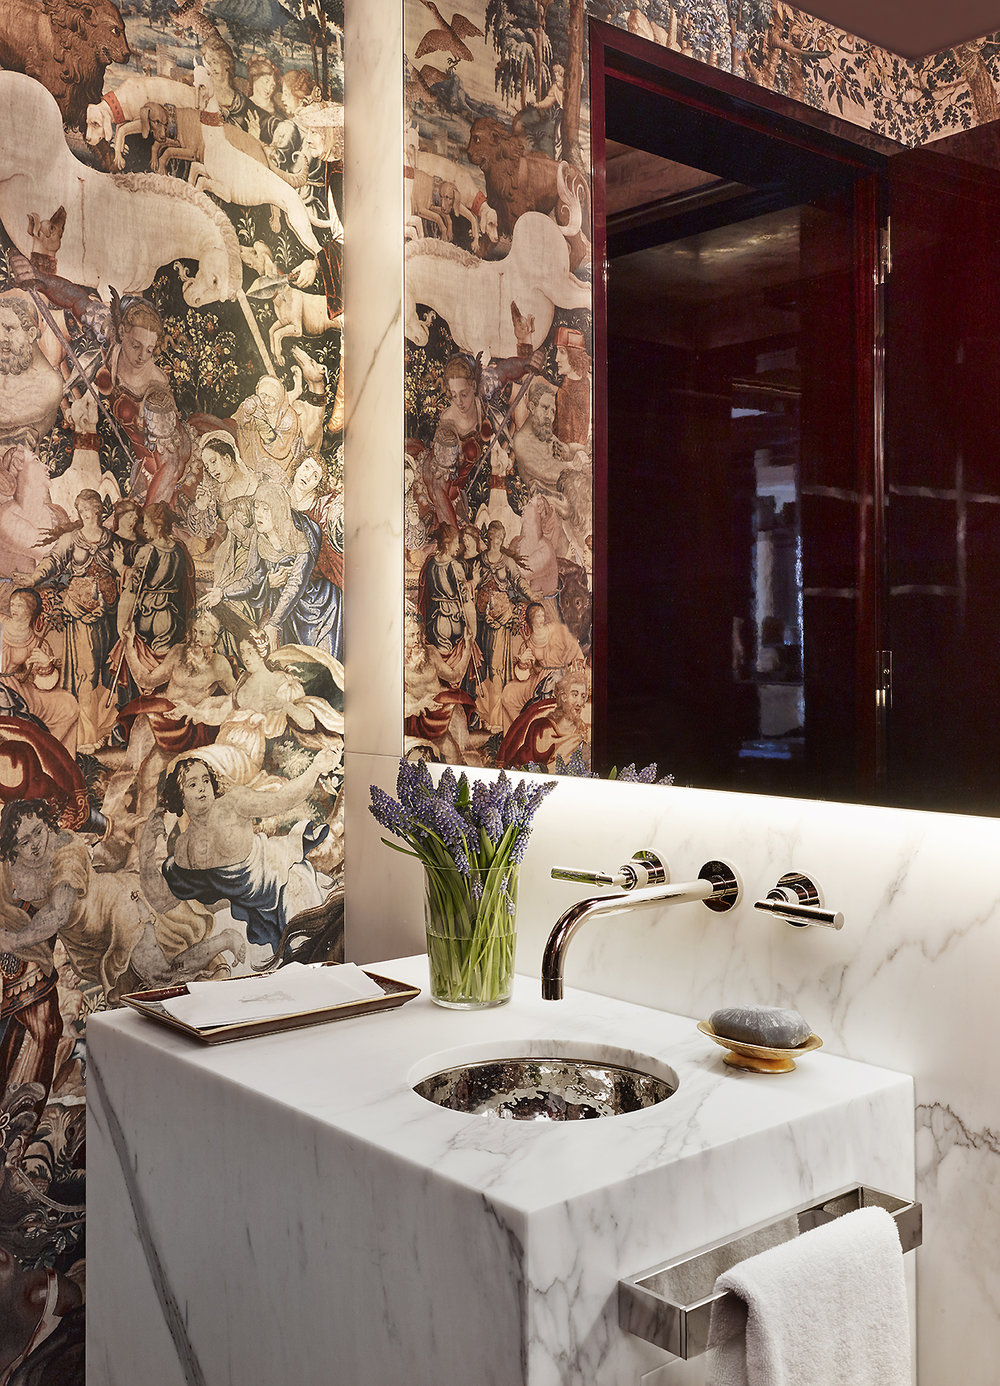 Stonefox 115 East 67th Street Powder Room Bathroom MEP designed by 2LS Consulting Engineering